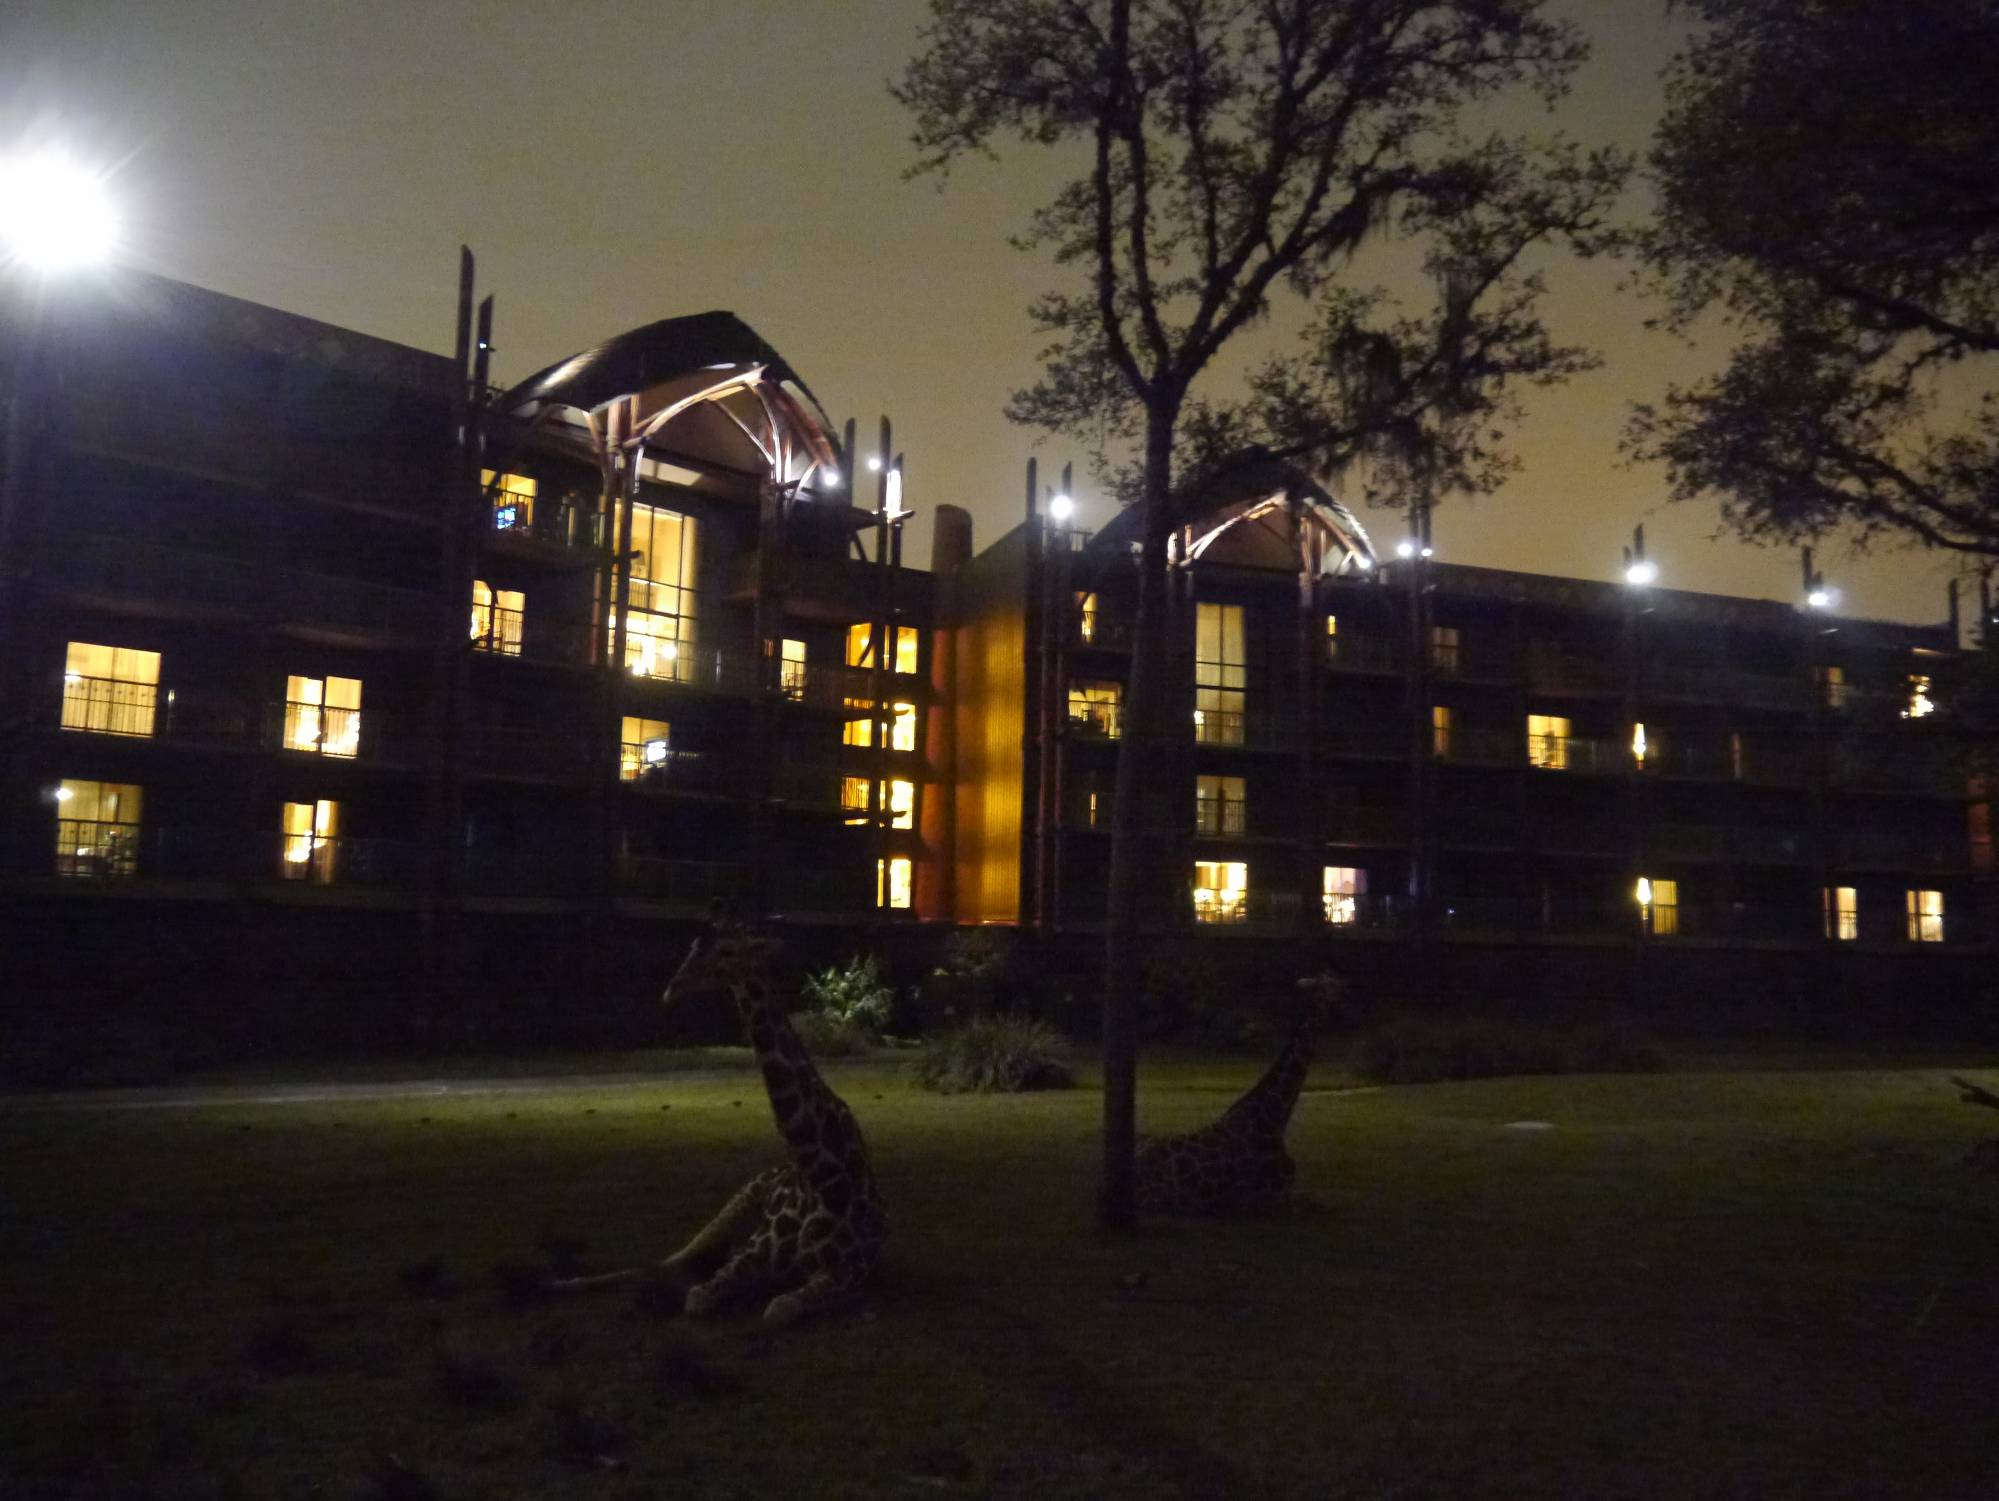 Guests of Disney's Animal Kingdom Lodge can experience a night-time safari | PassPorter.com